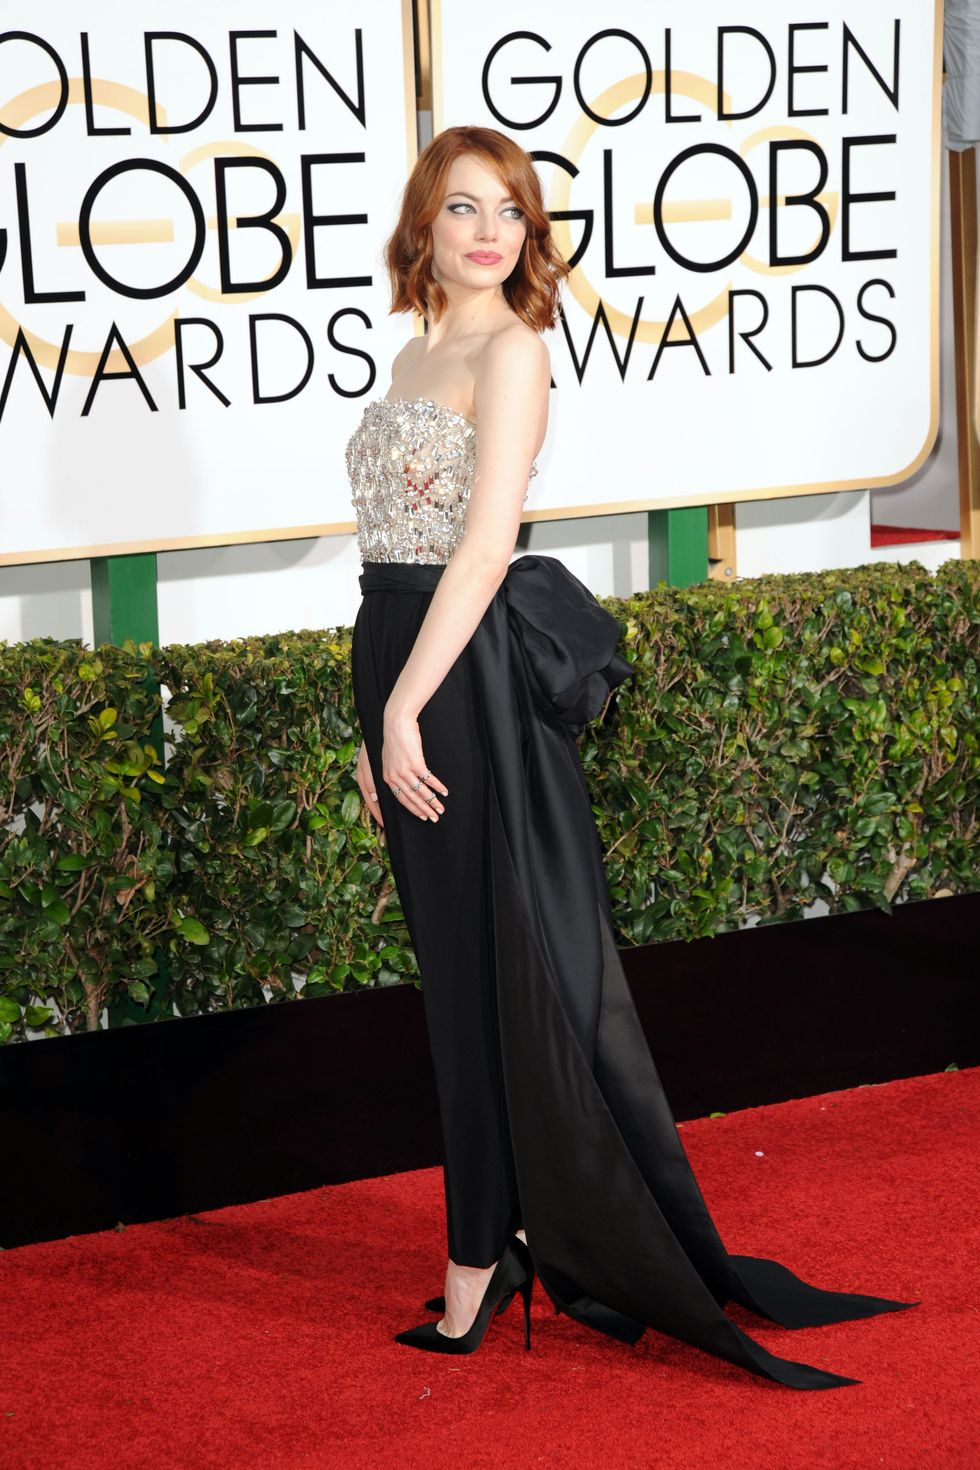 The Best and Worst Celebrity Fashion at the Golden Globes